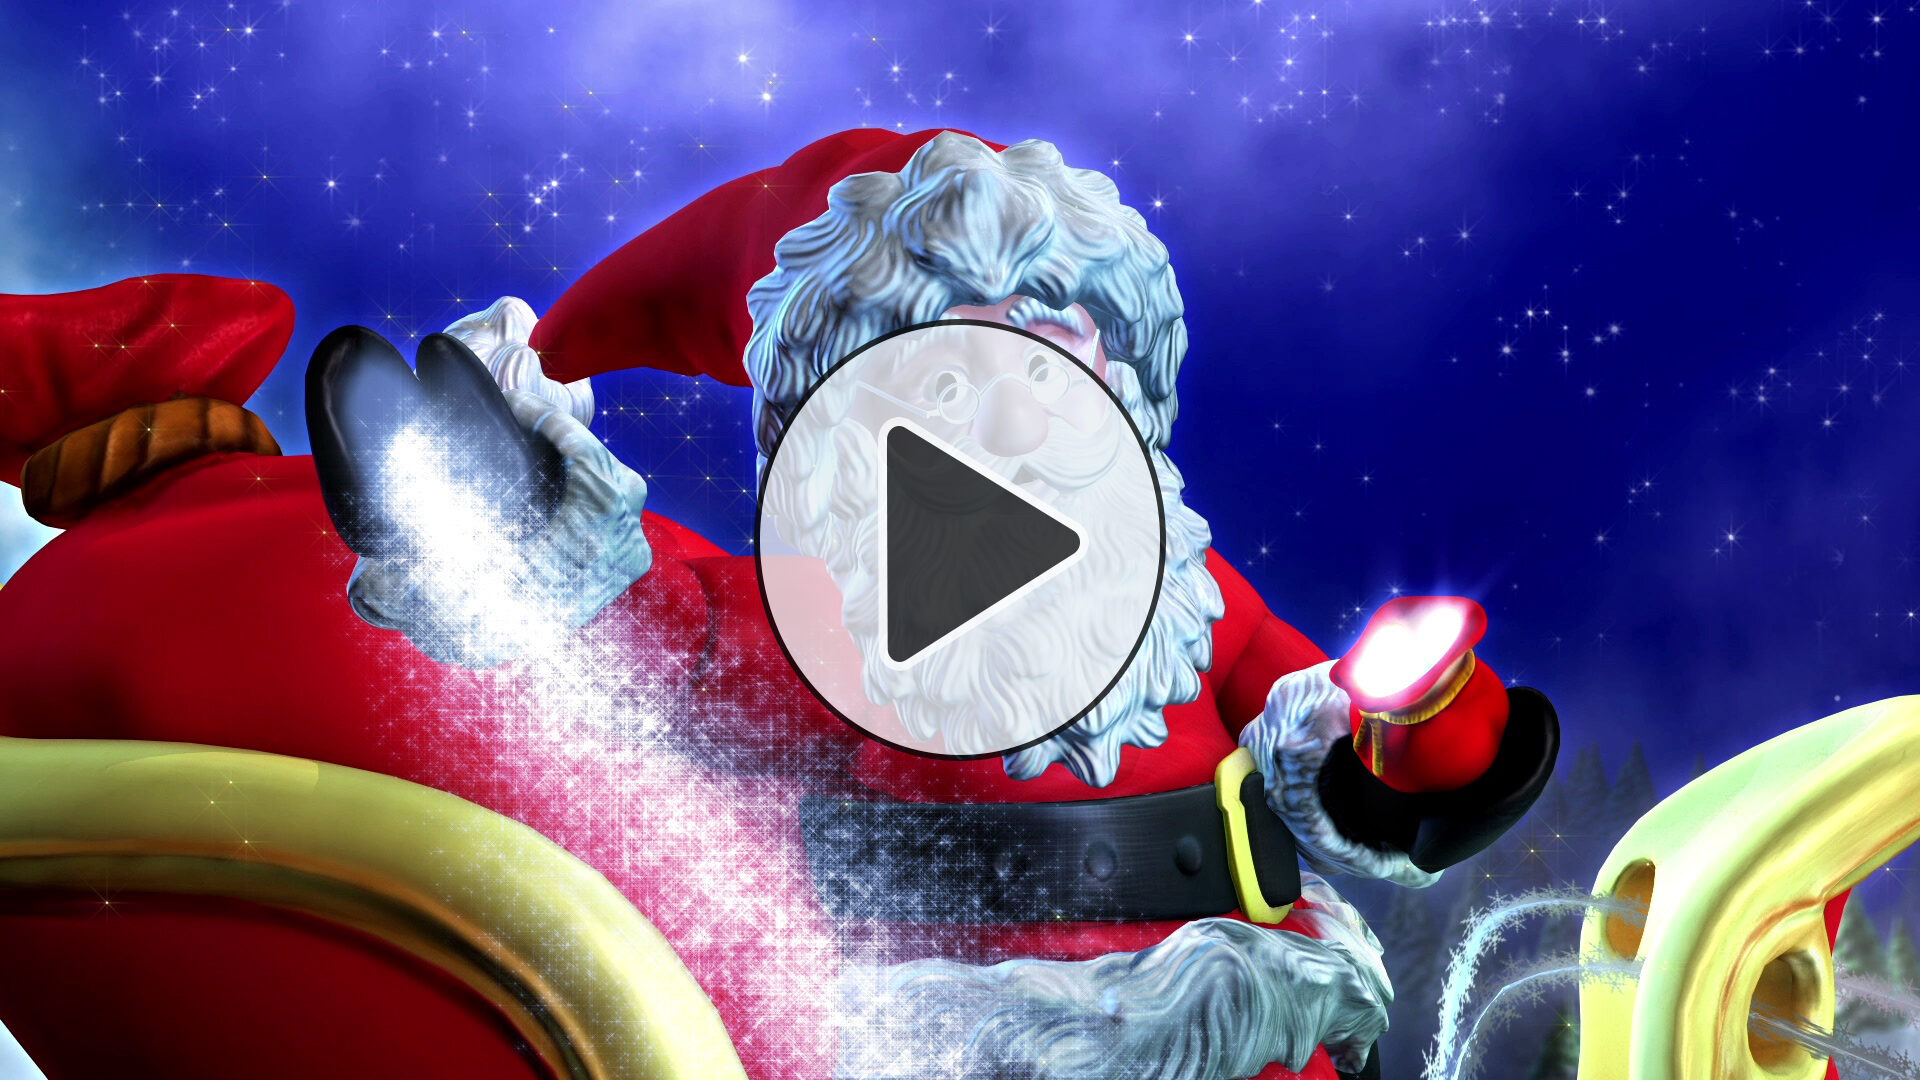 Joyeux Noel Cartes Virtuelles.Carte Virtuelle Carte De Noel Enfant Gratuite